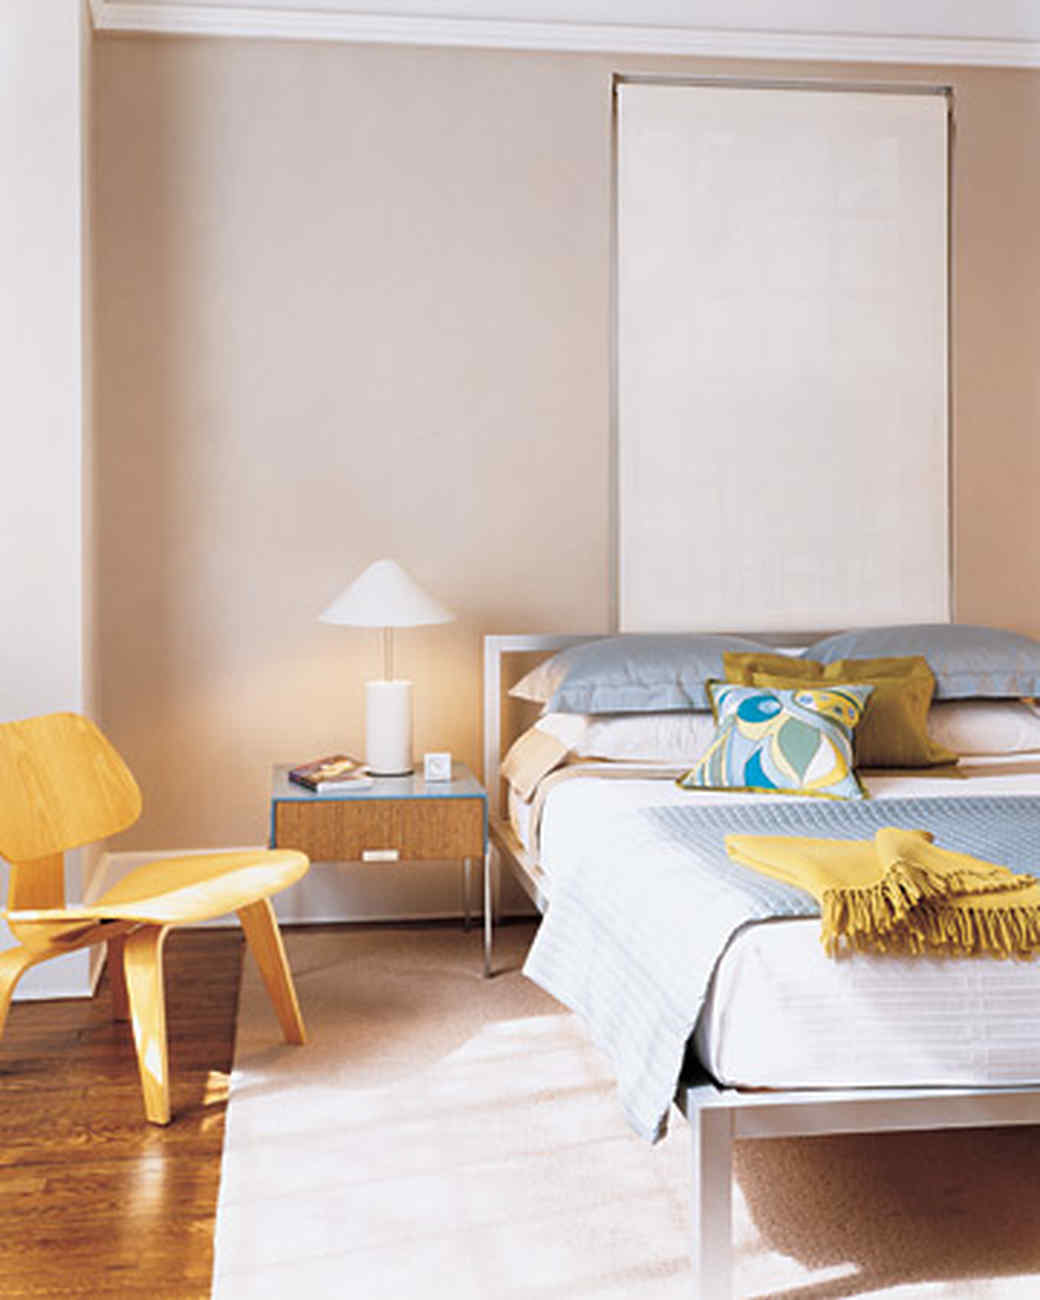 martha stewart bedroom colors bedroom decorating ideas martha stewart 15971